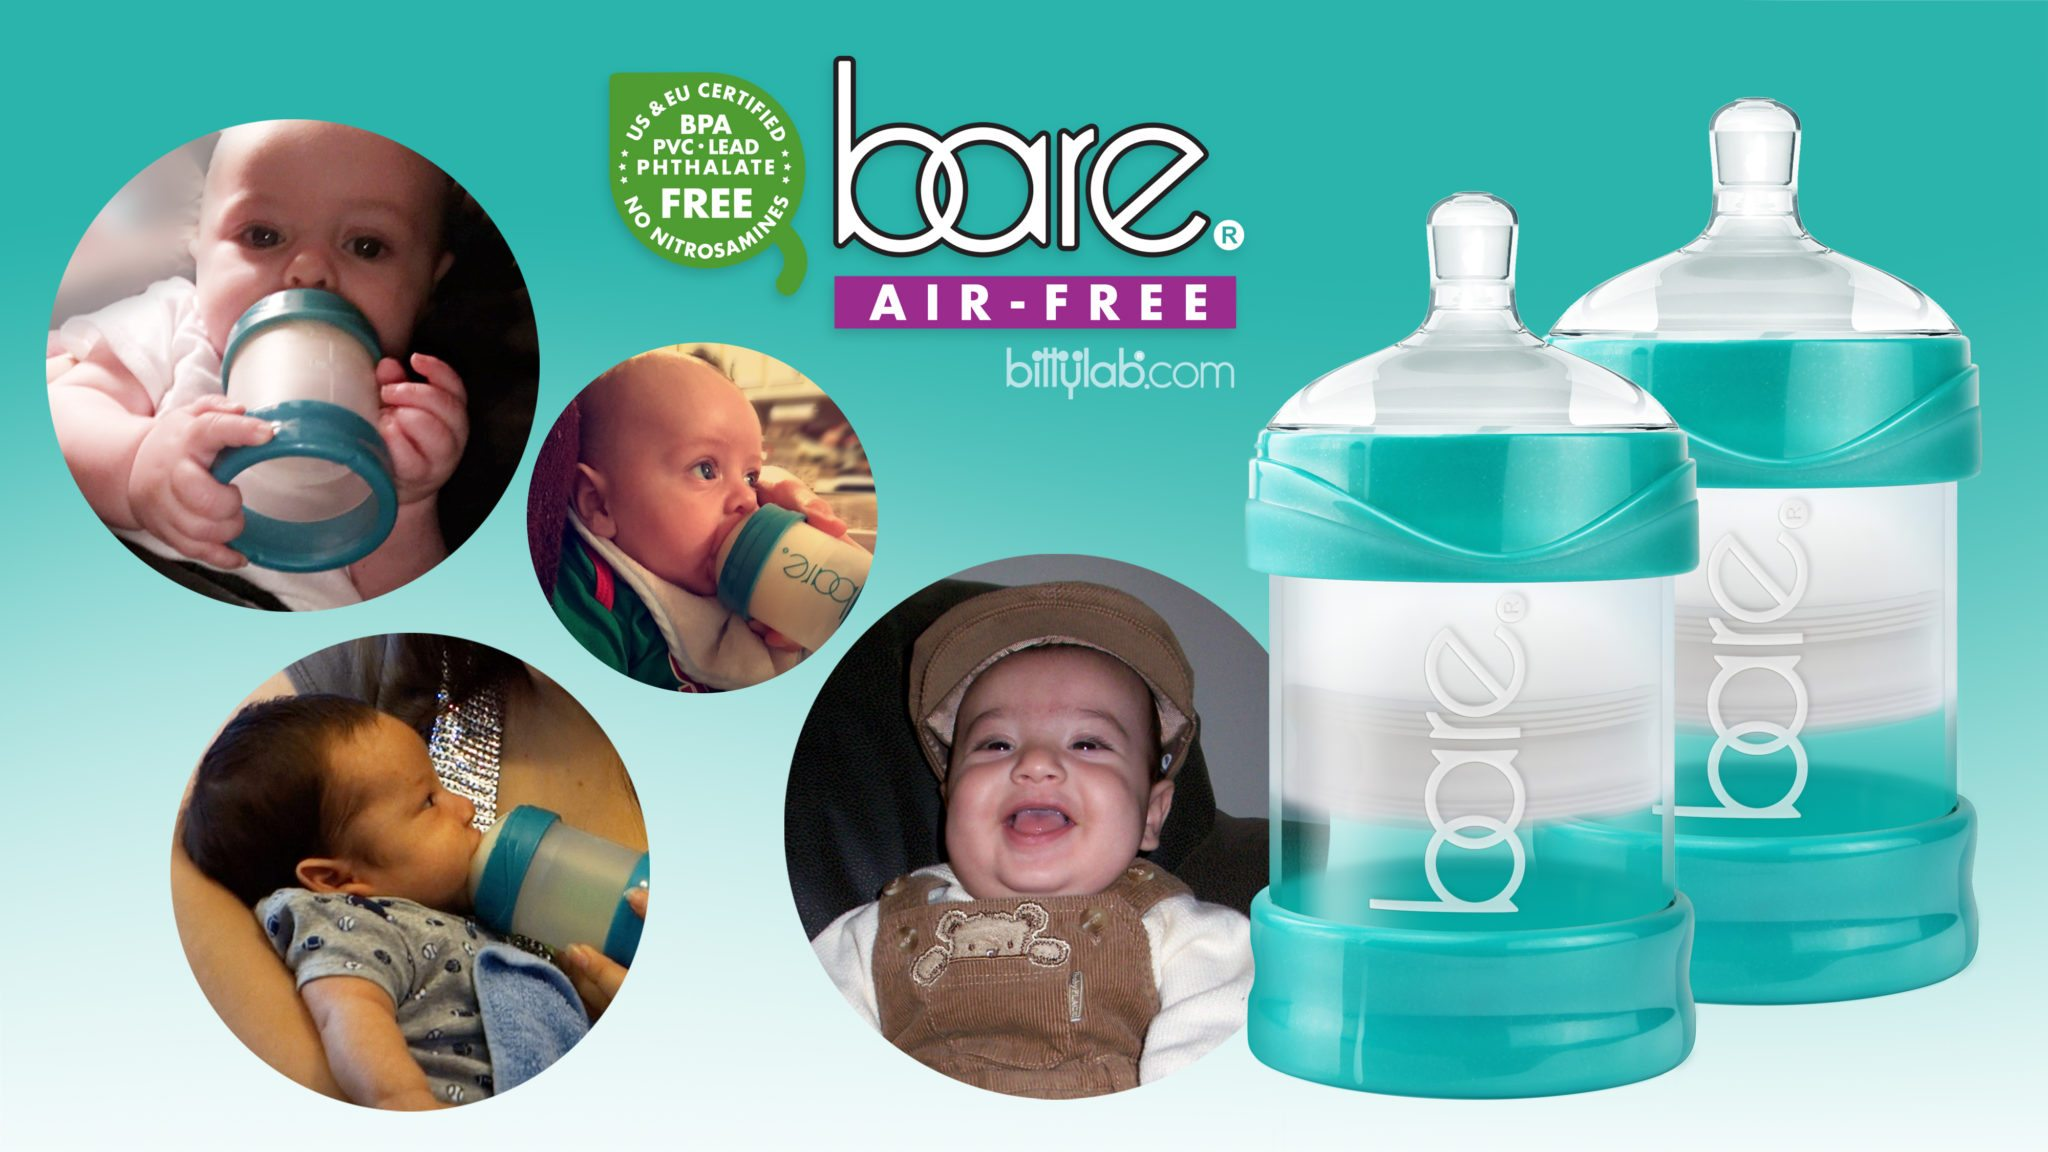 6 tips to prevent gas and colic in babies - Bare® Air-free